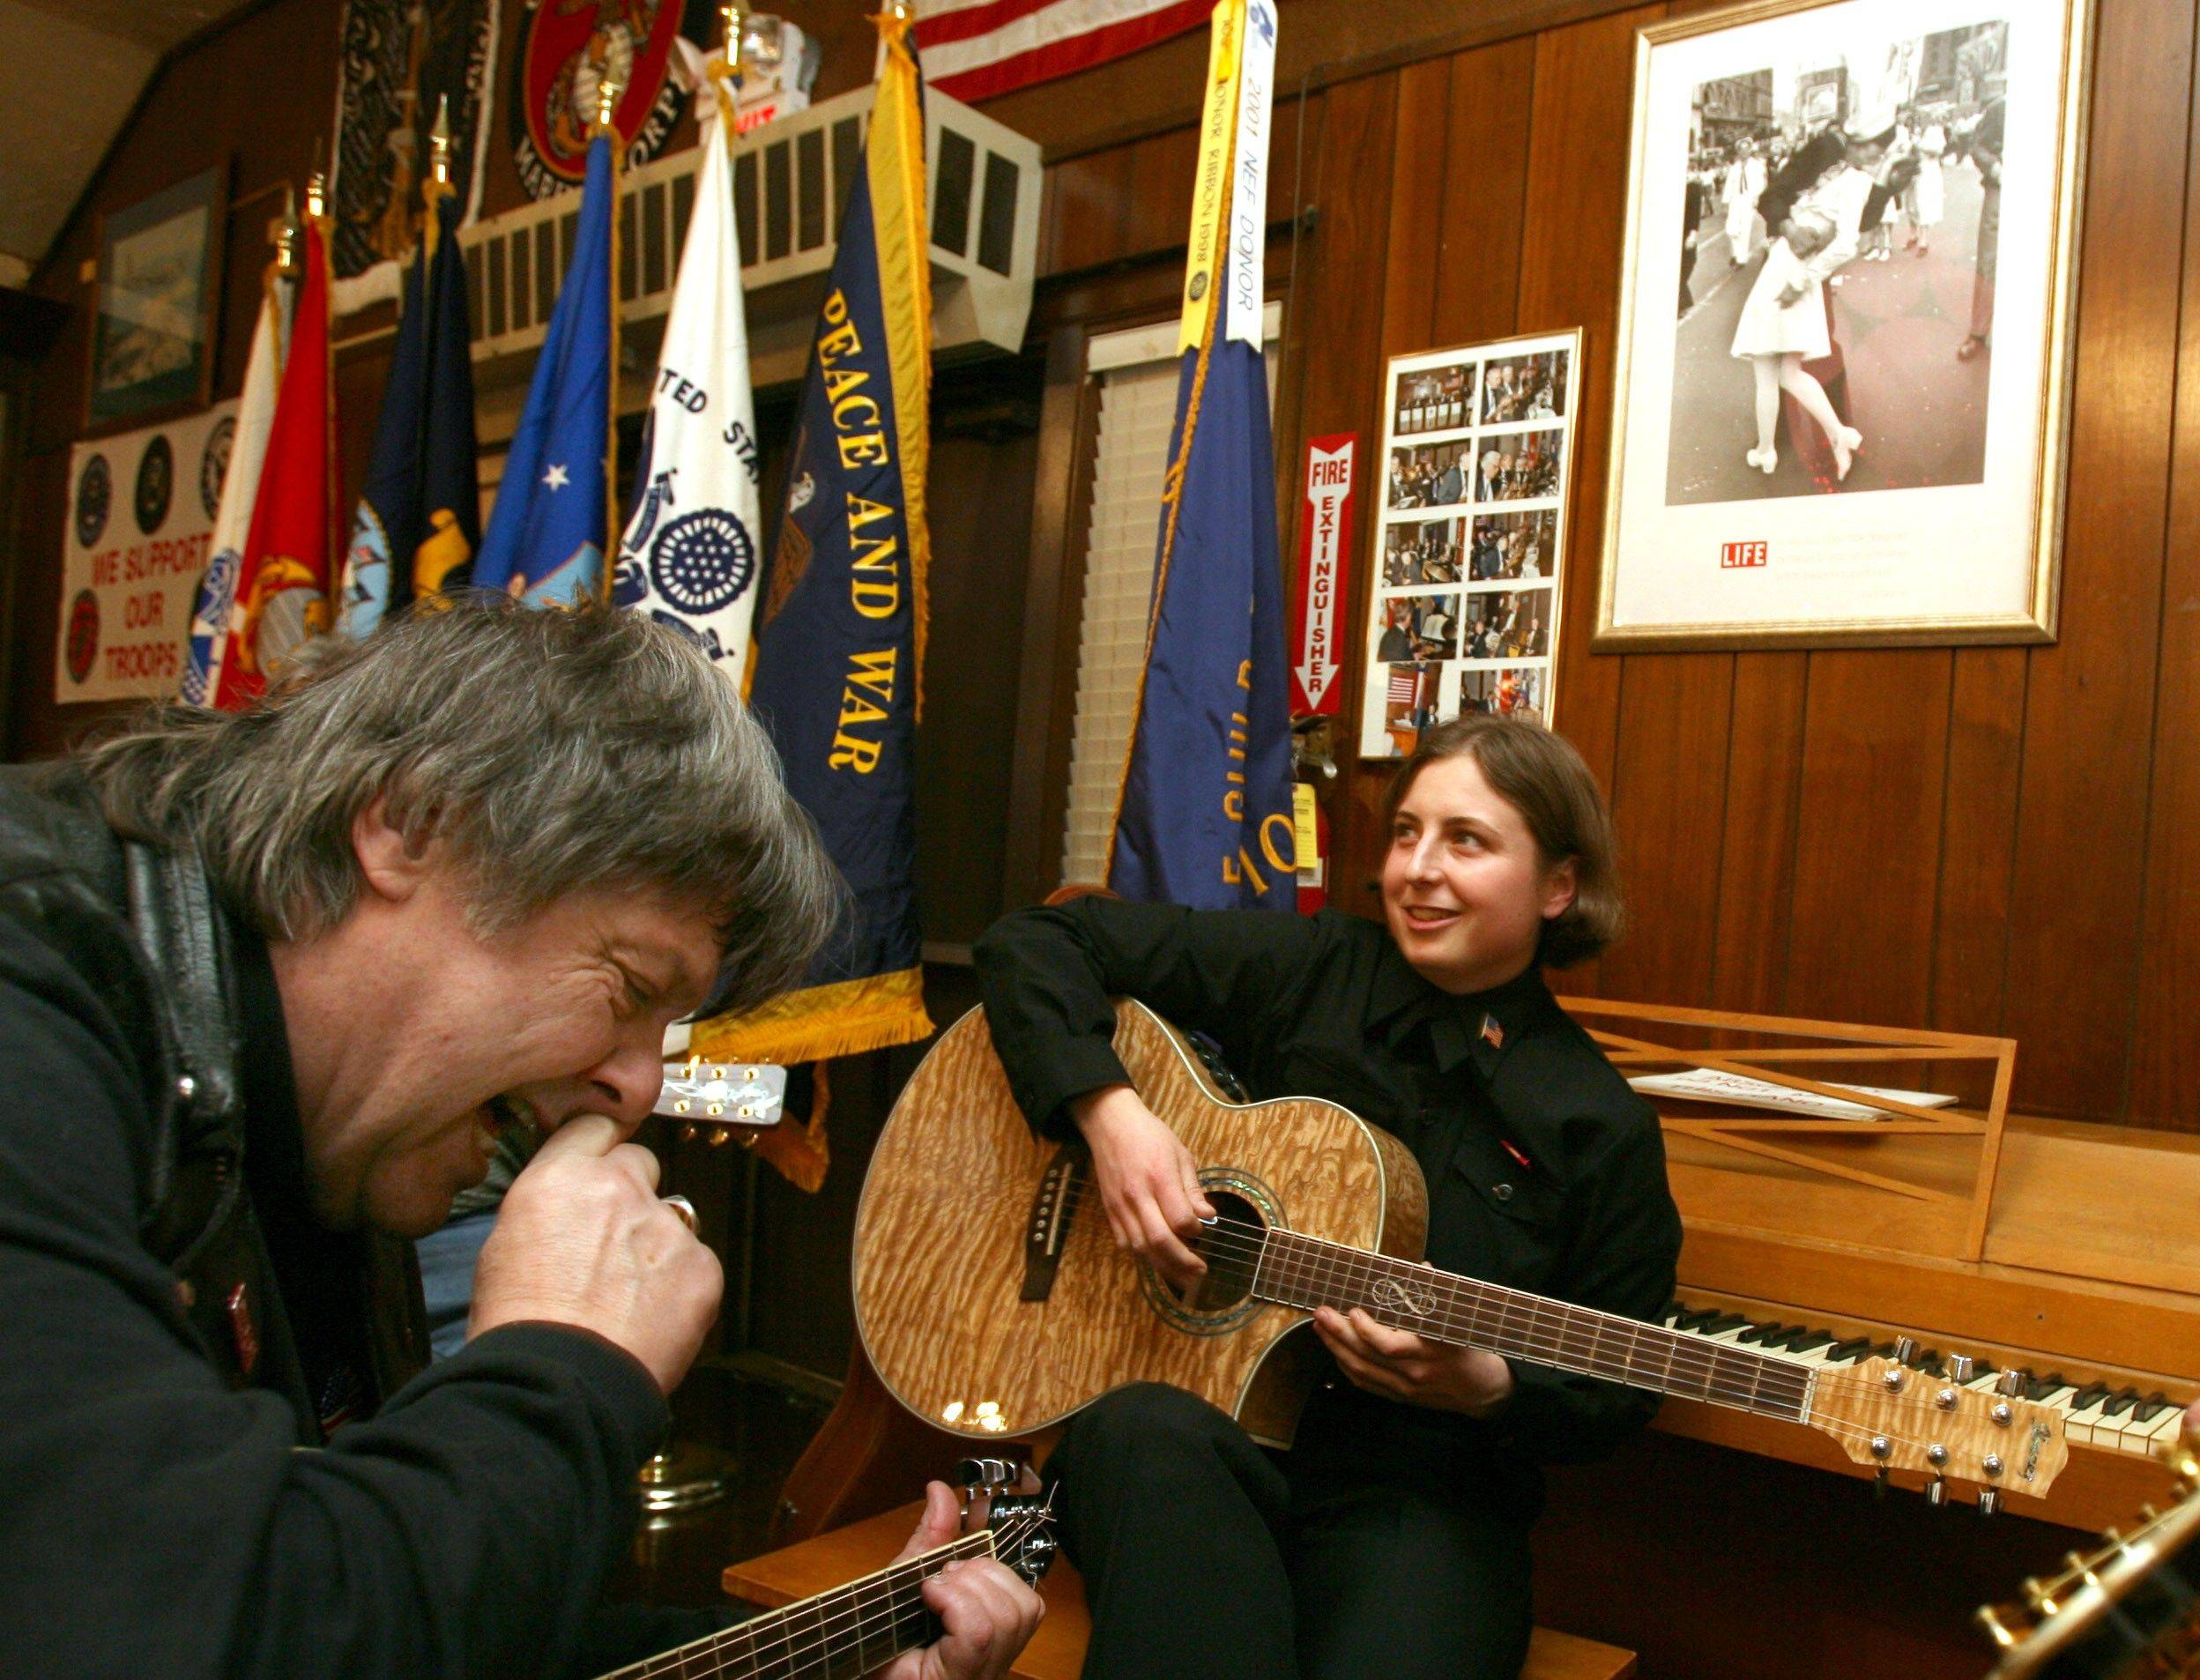 Ray Herr plays guitar with Great Lakes recruit Michelle Gray, following the 2006 Thanksgiving dinner at American Legion Post 208 in Arlington Heights.